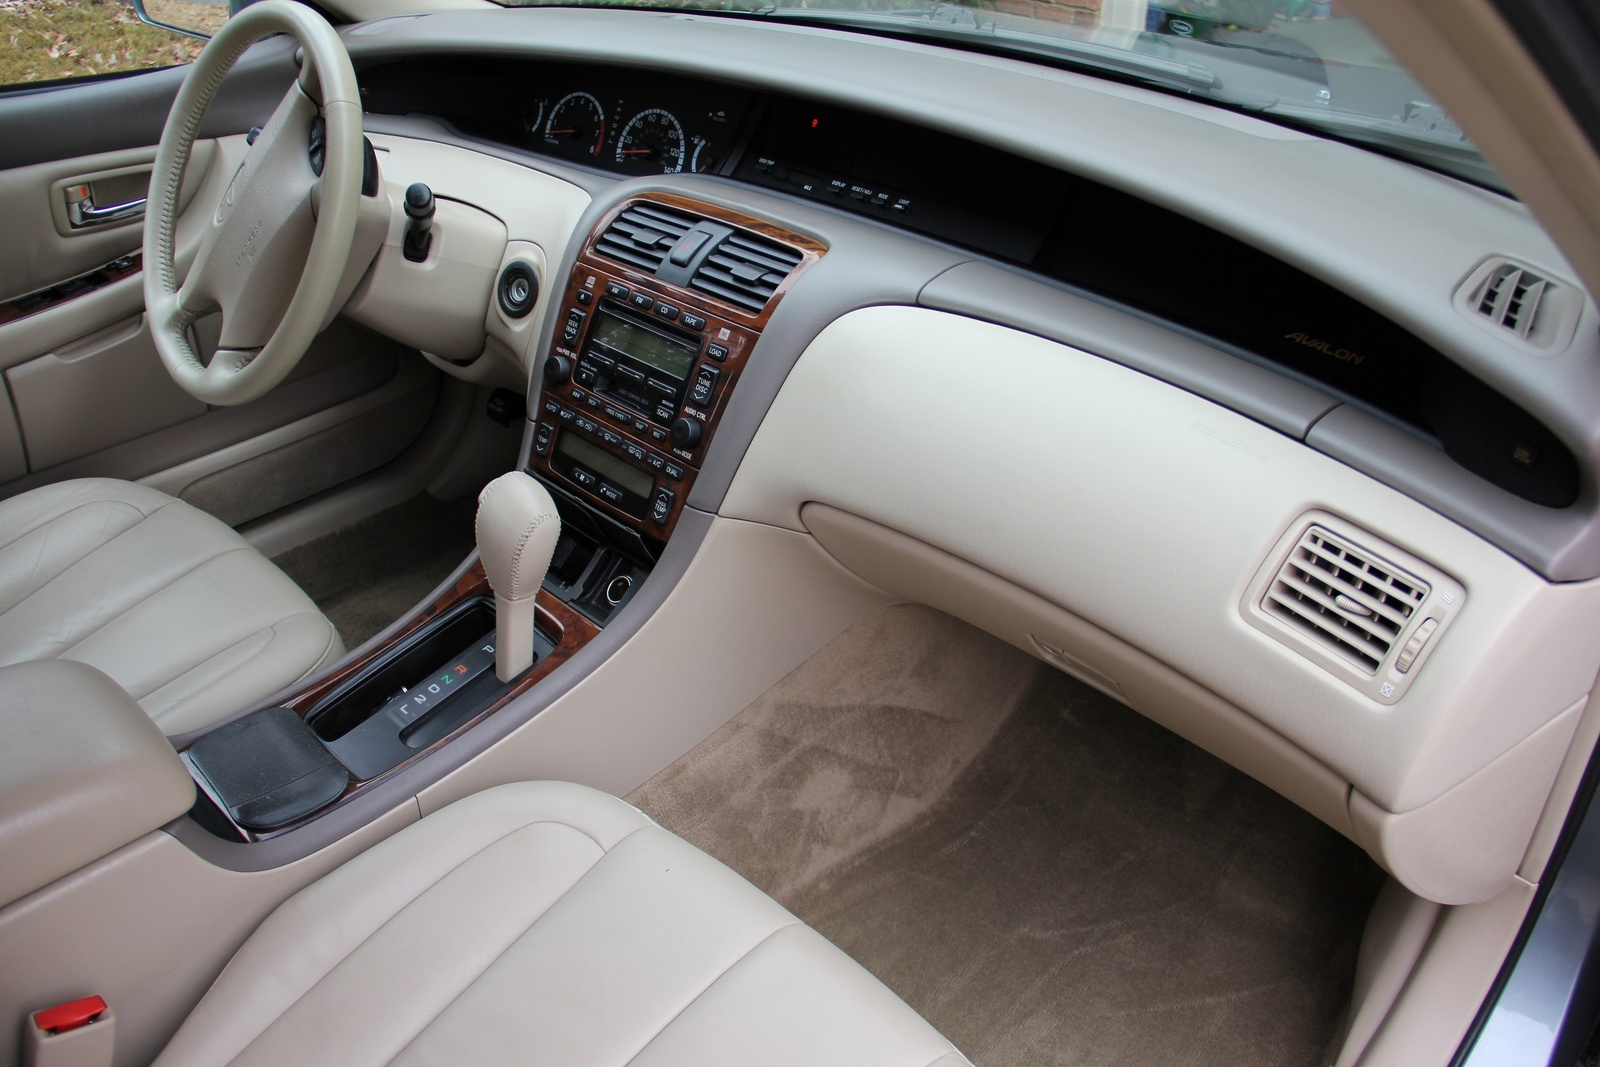 2001 Toyota Avalon Interior Pictures Cargurus